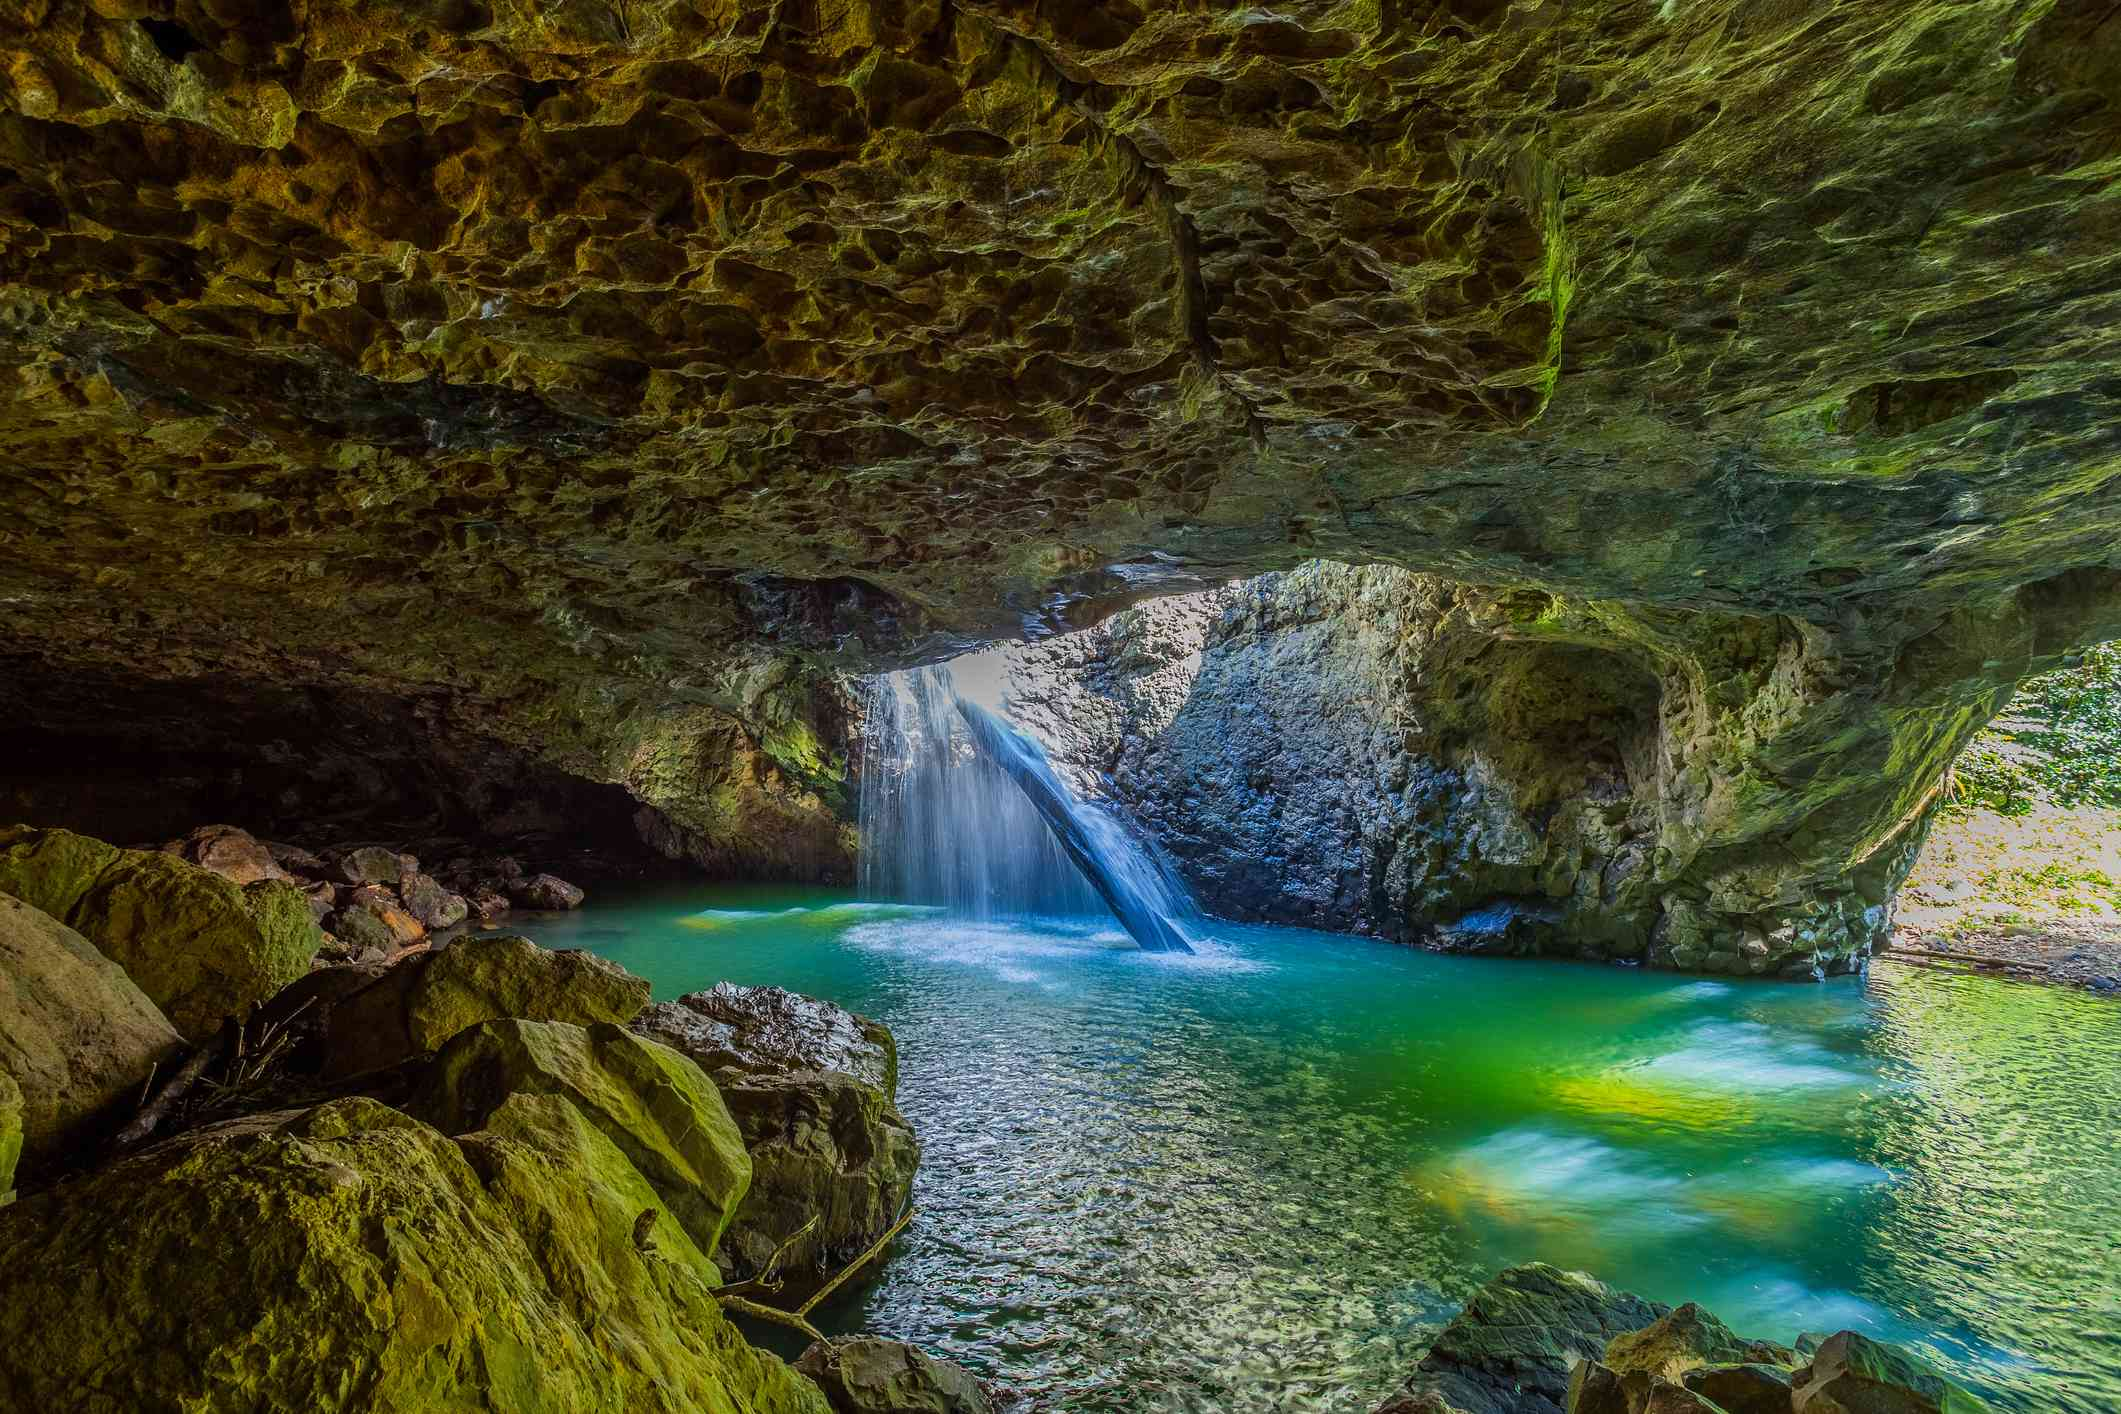 Inside of the cave of Natural Bridge, with turquoise water falling down through an opening in the roof of the cave